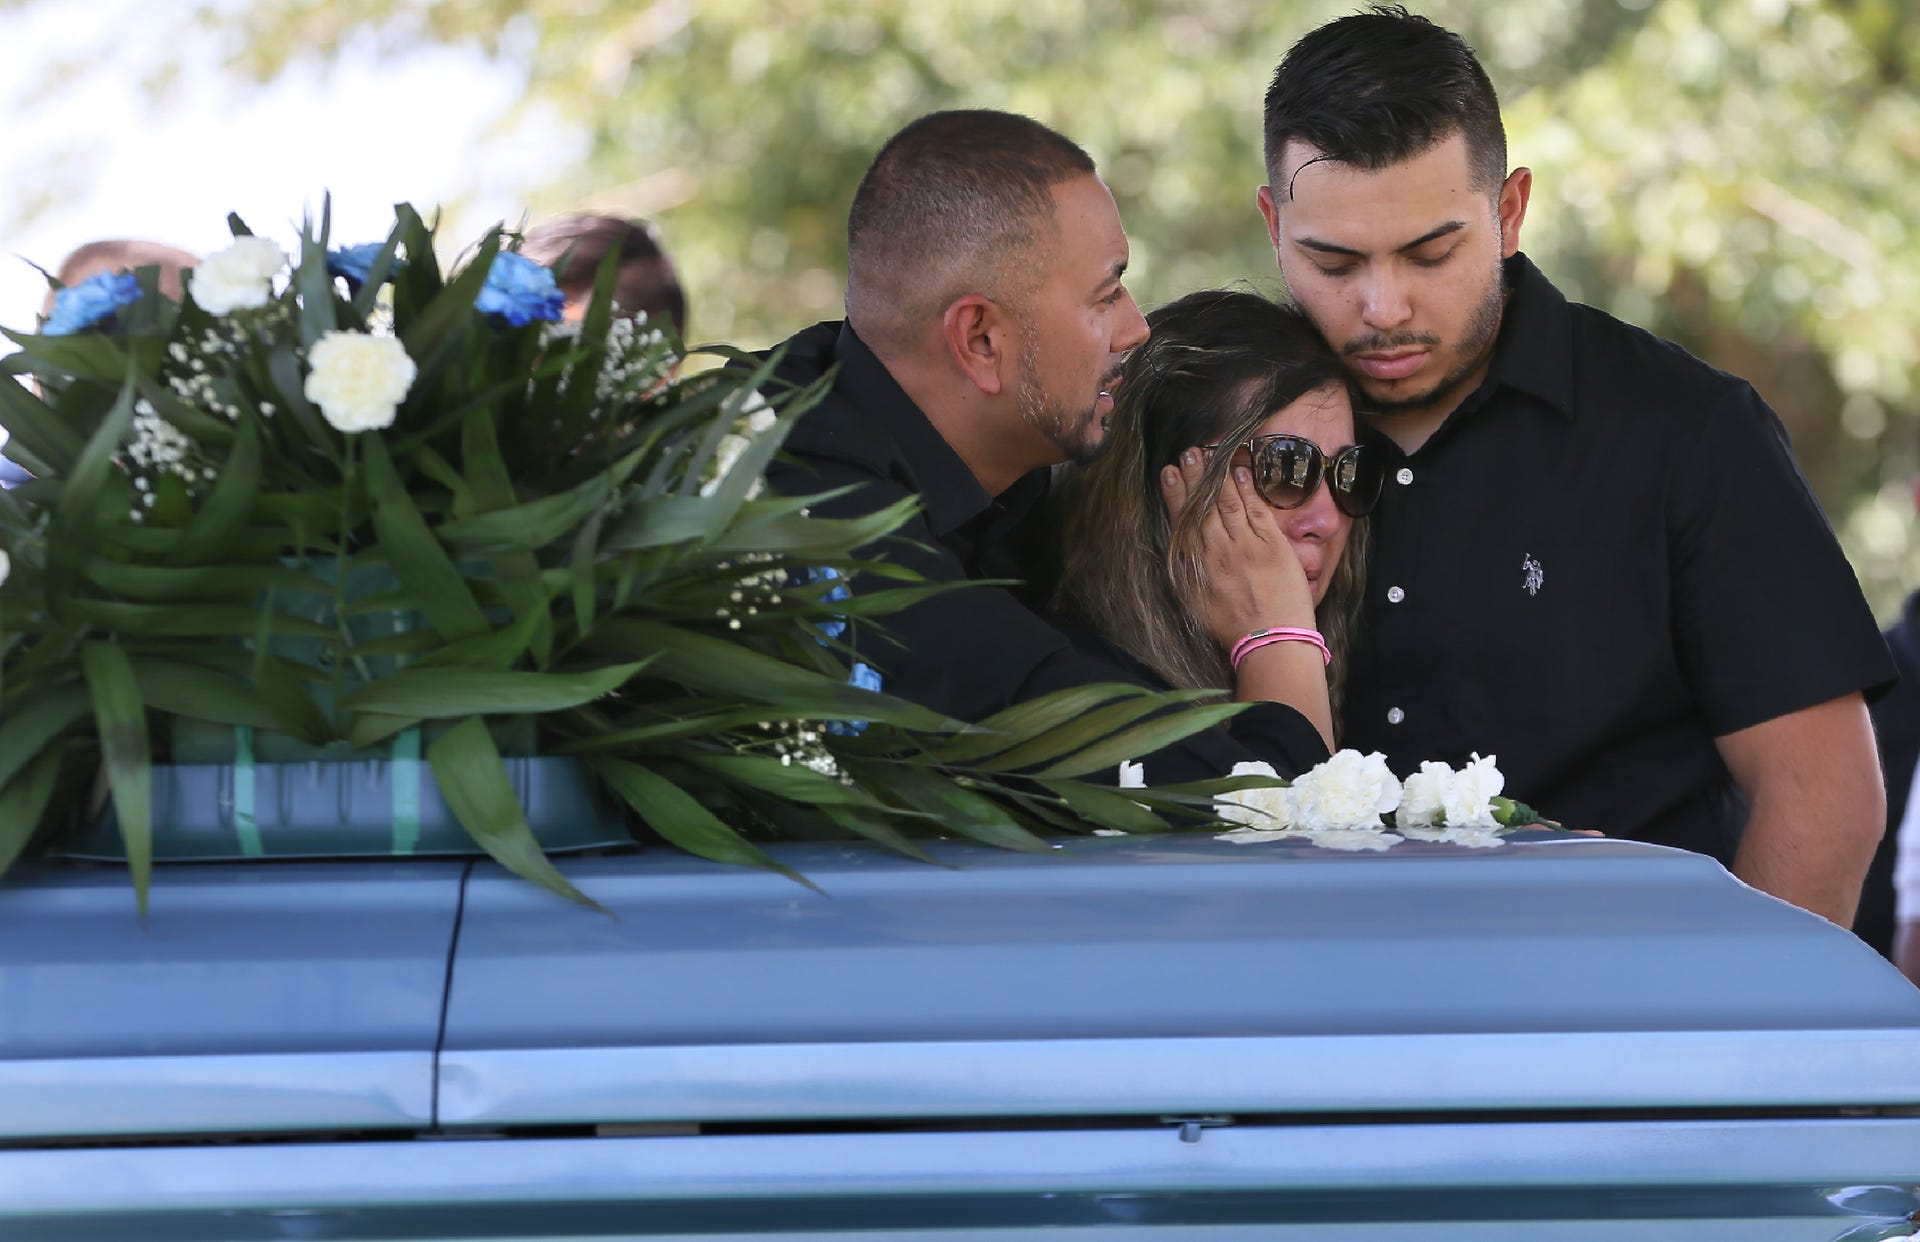 First Person Shot at Walmart Laid to Rest Friday